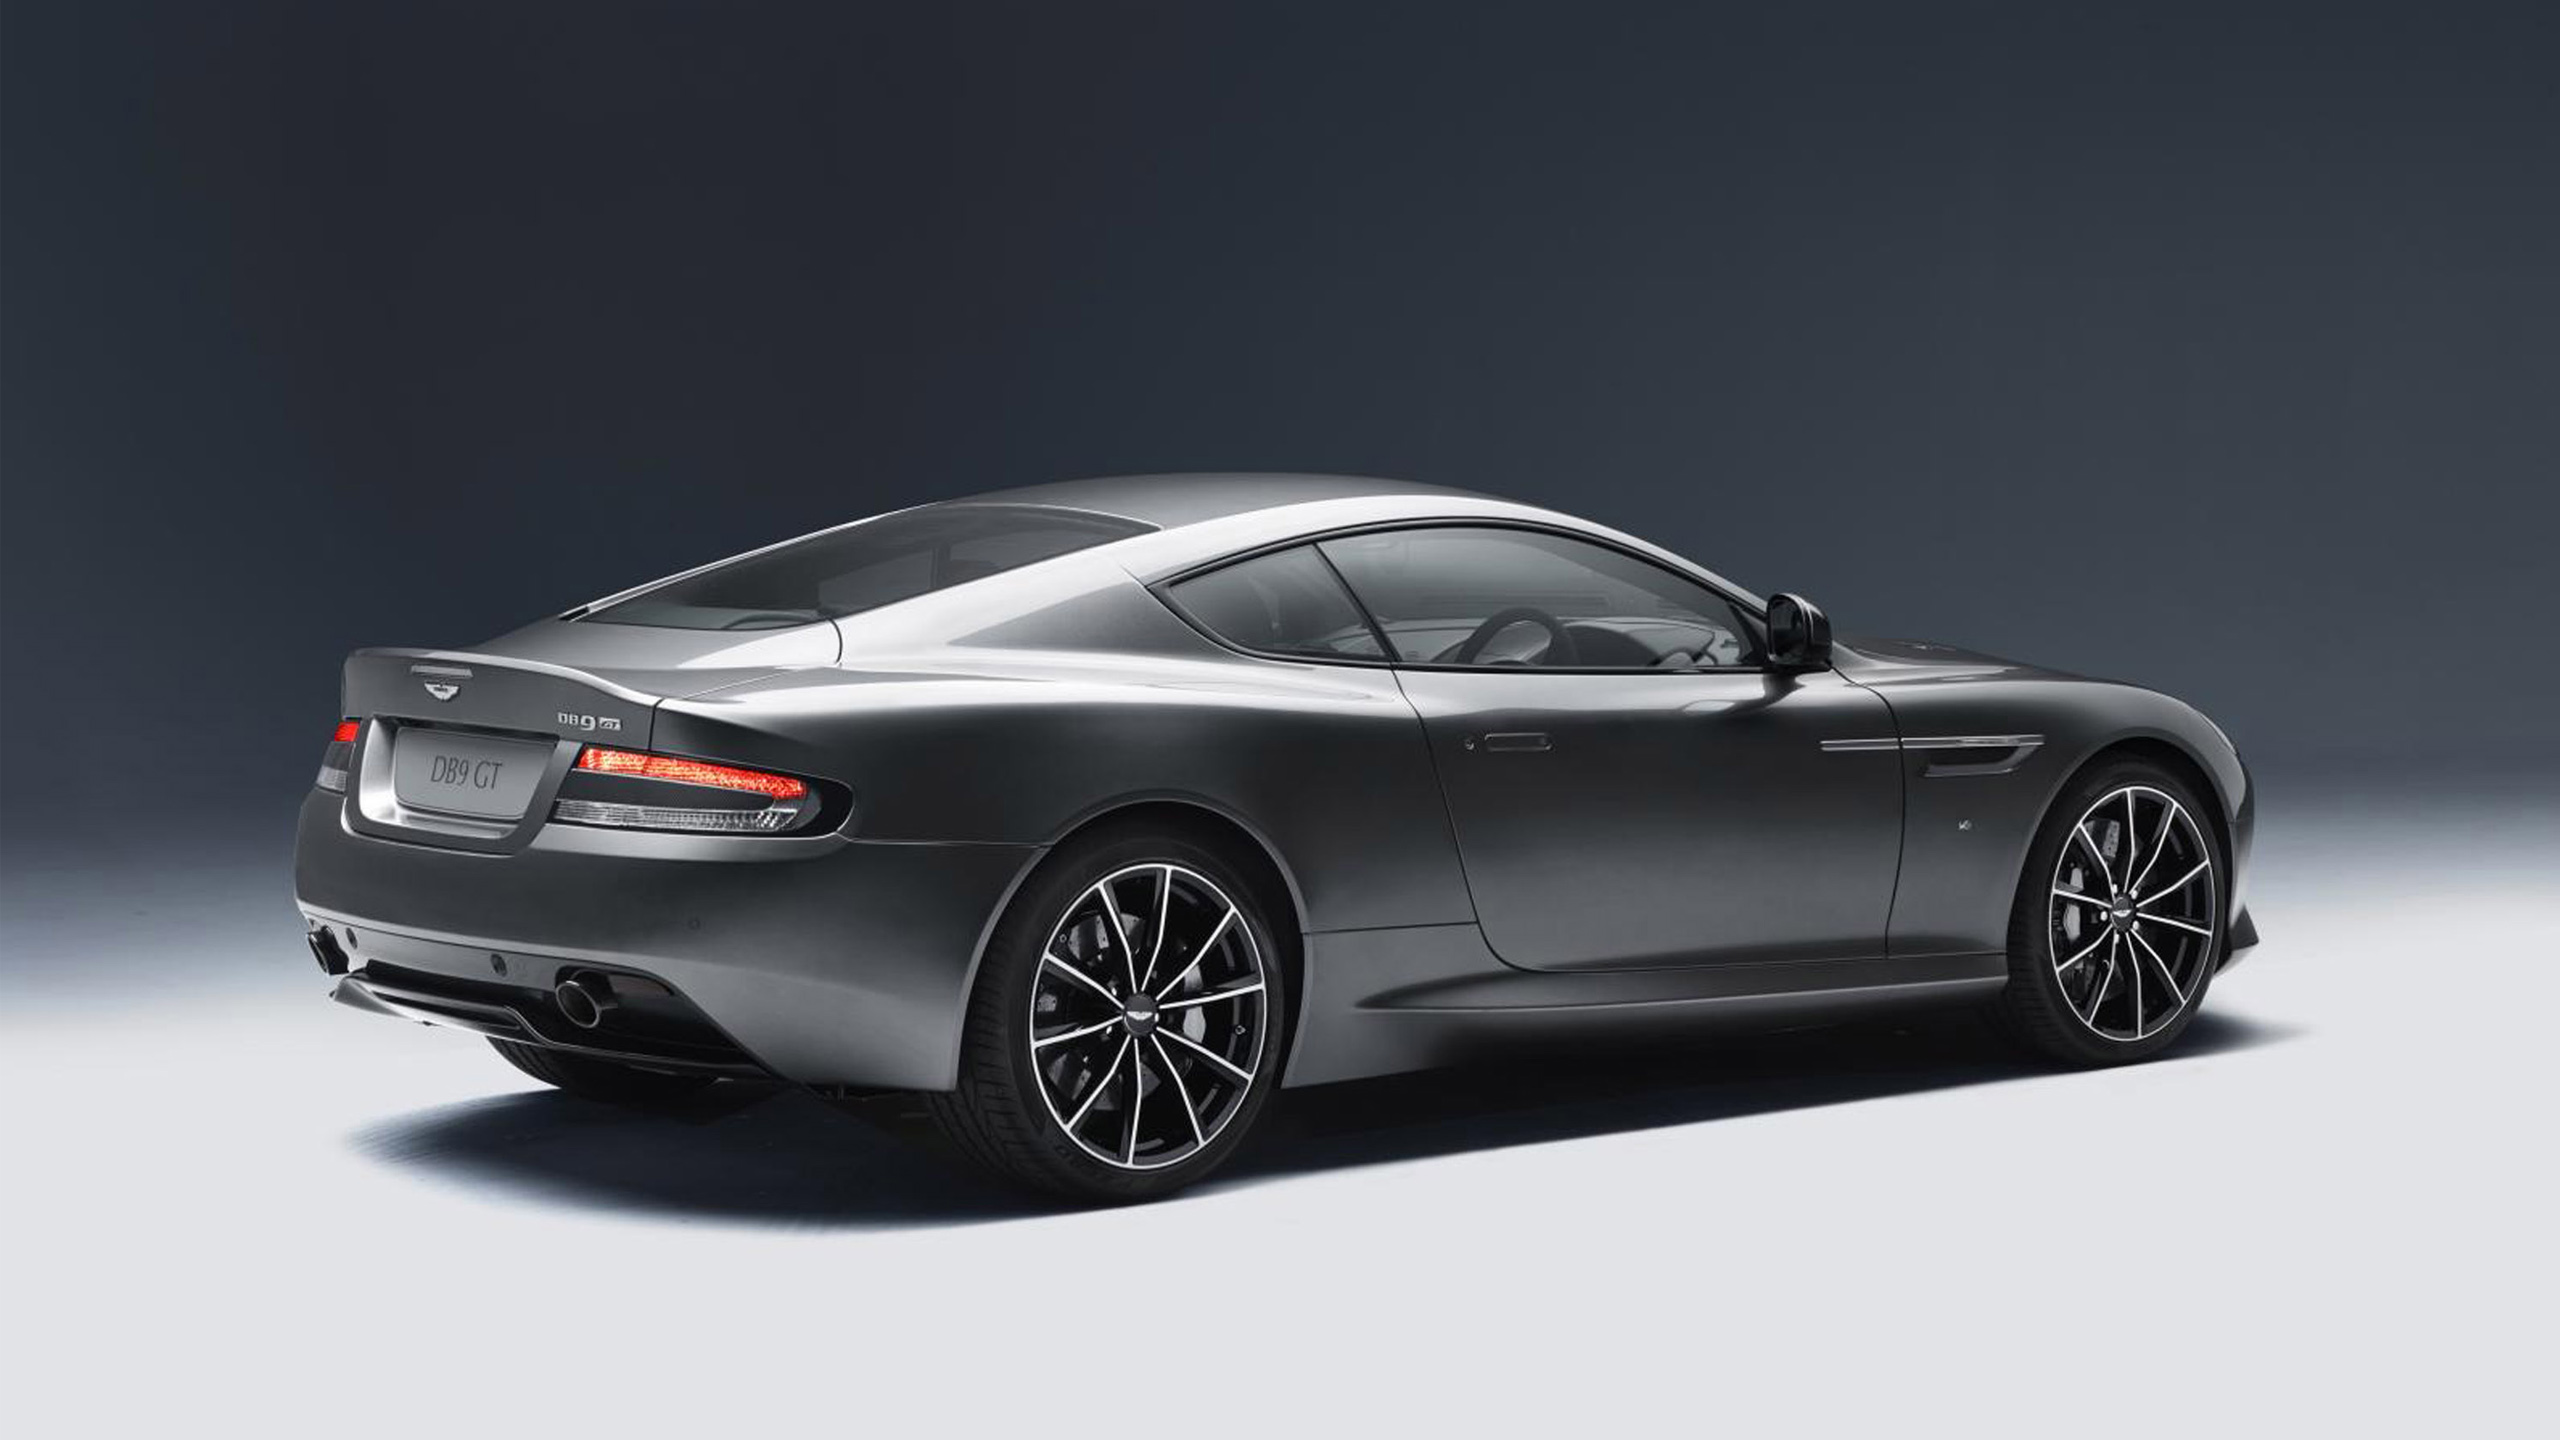 2015 aston martin db9 gt 2 wallpaper hd car wallpapers. Black Bedroom Furniture Sets. Home Design Ideas